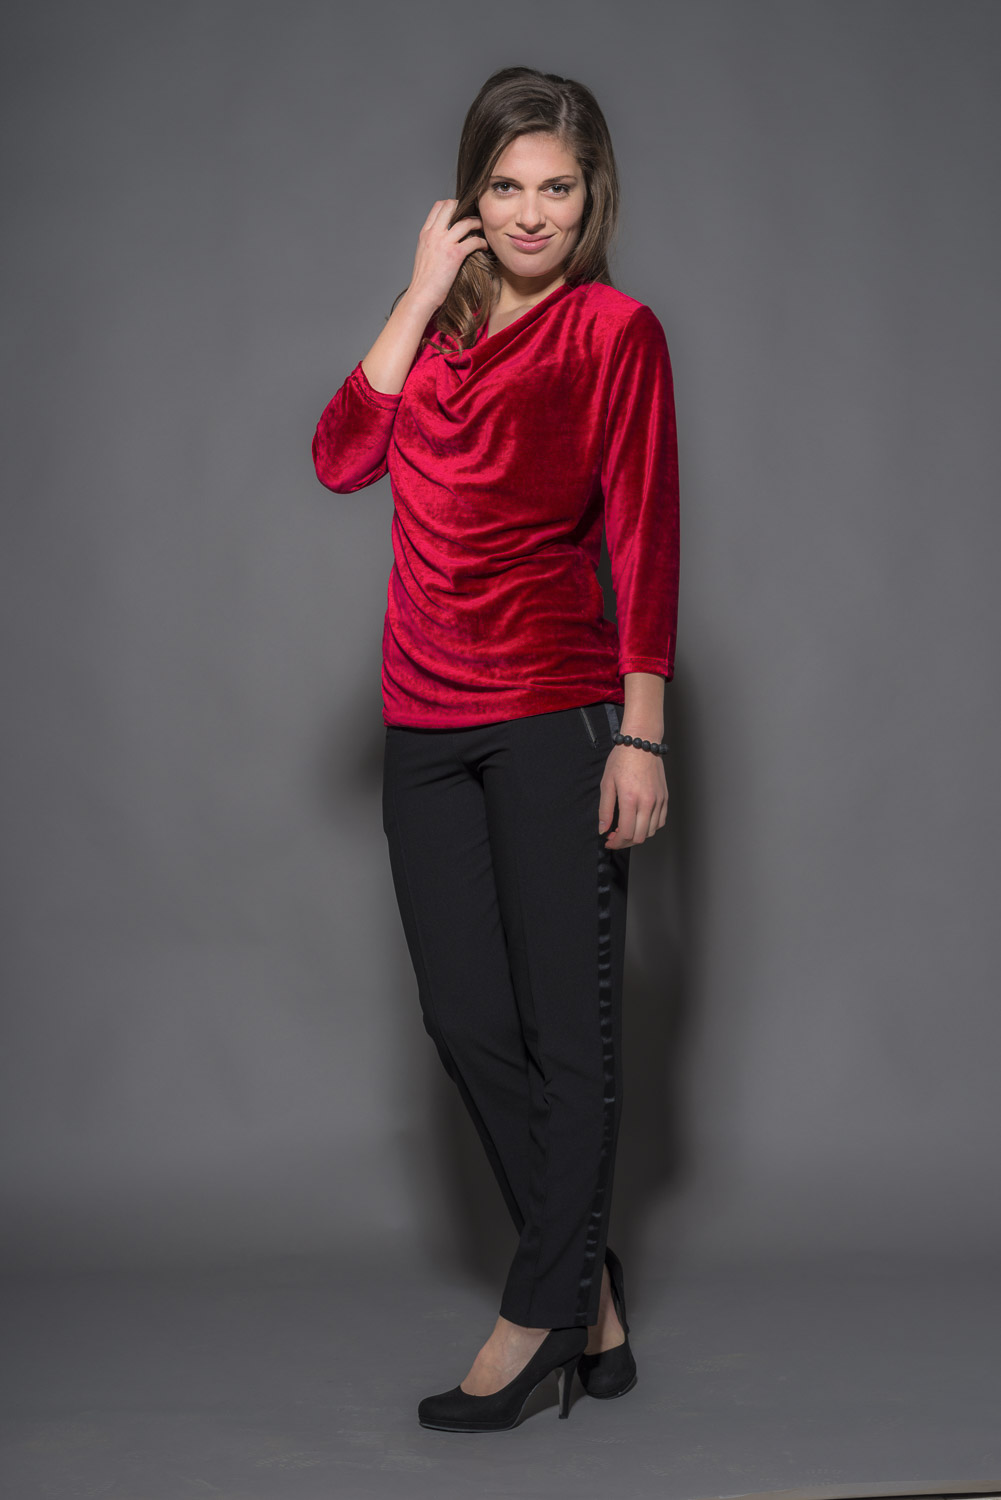 Blouse C4764 – Pants C5356